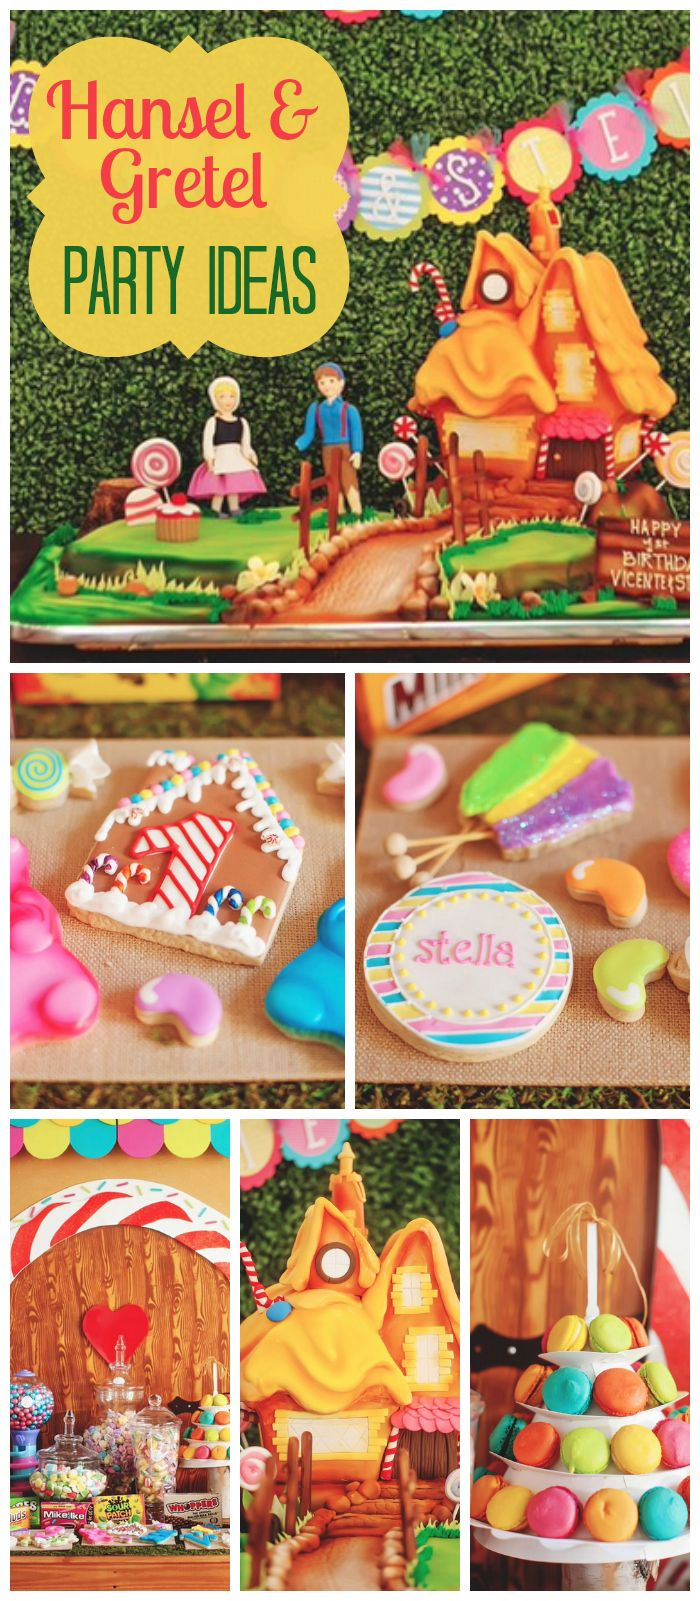 A Hansel & Gretel birthday party with an amazing gingerbread house backdrop and decorations! See more party planning ideas at CatchMyParty.com!